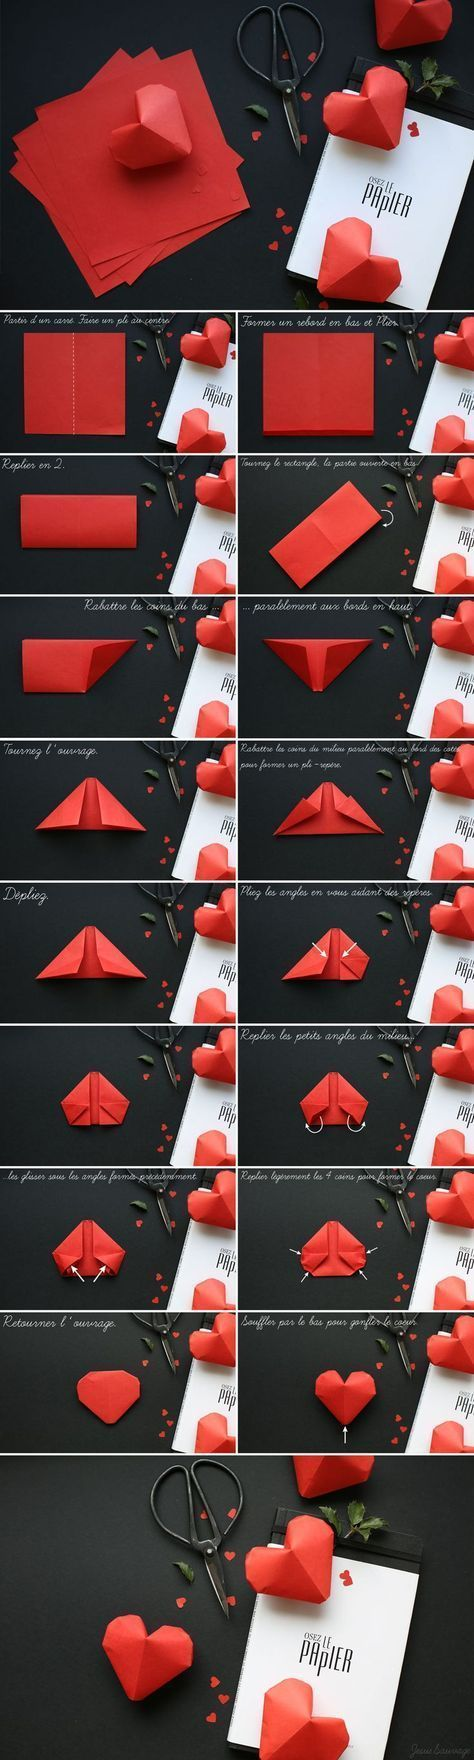 15 Creative DIY Paper Crafts Tutorials Exploding With Delicacy And Wonder #creativegifts